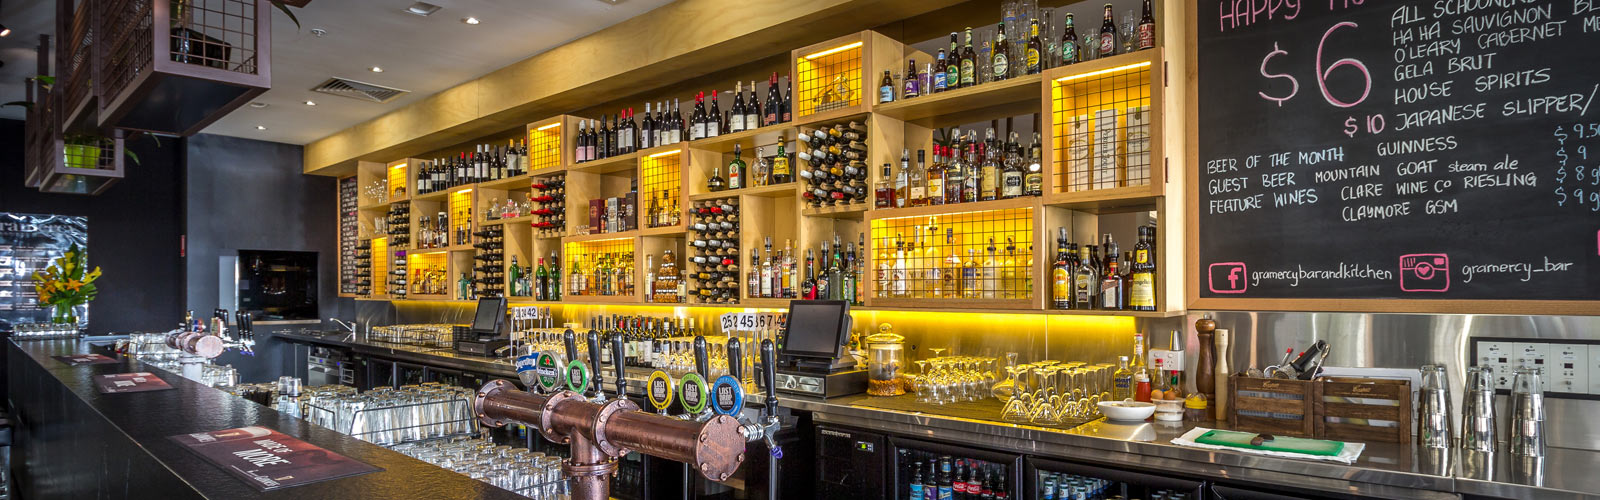 Best Cocktail Bar CBD Perth